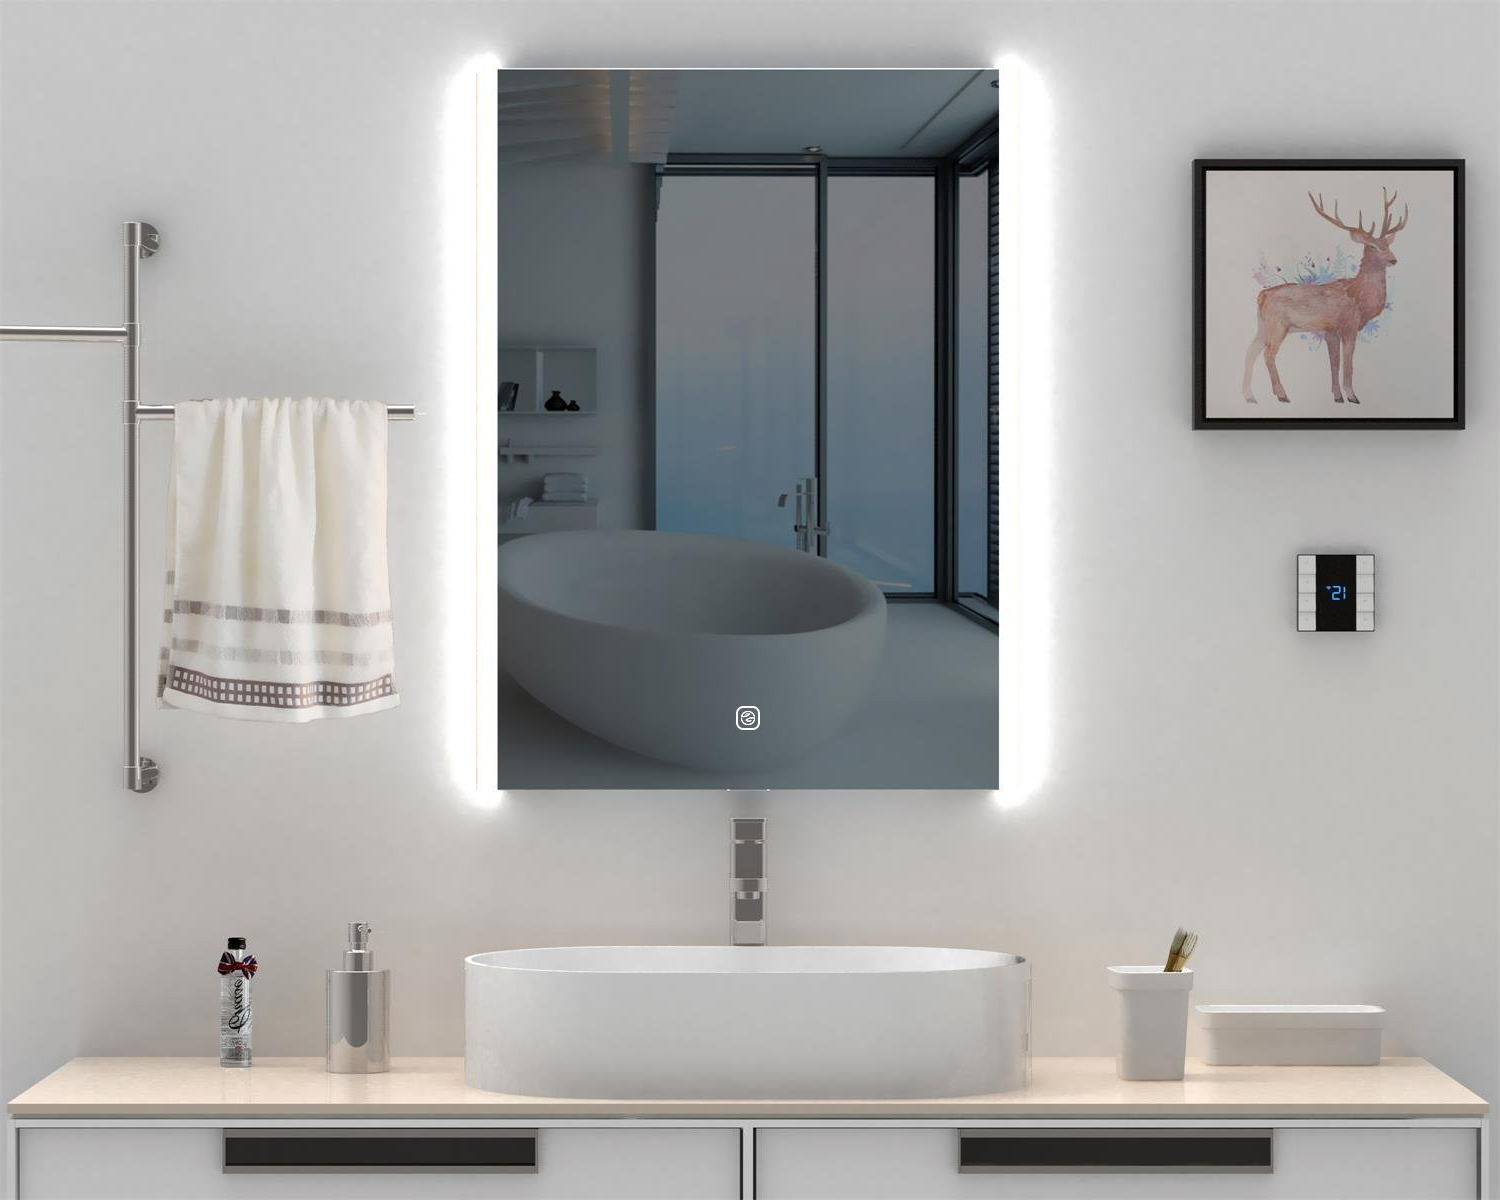 "Heynemo 32""x24"" Bathroom Led Lighted Vanity Mirror Wall Mounted Makeup  Mirror, Led Lights Vanity Dimmer Touch Switch Waterproof Illuminated Mirror  For Within Trendy Wall Mirror For Bathroom (Gallery 1 of 20)"